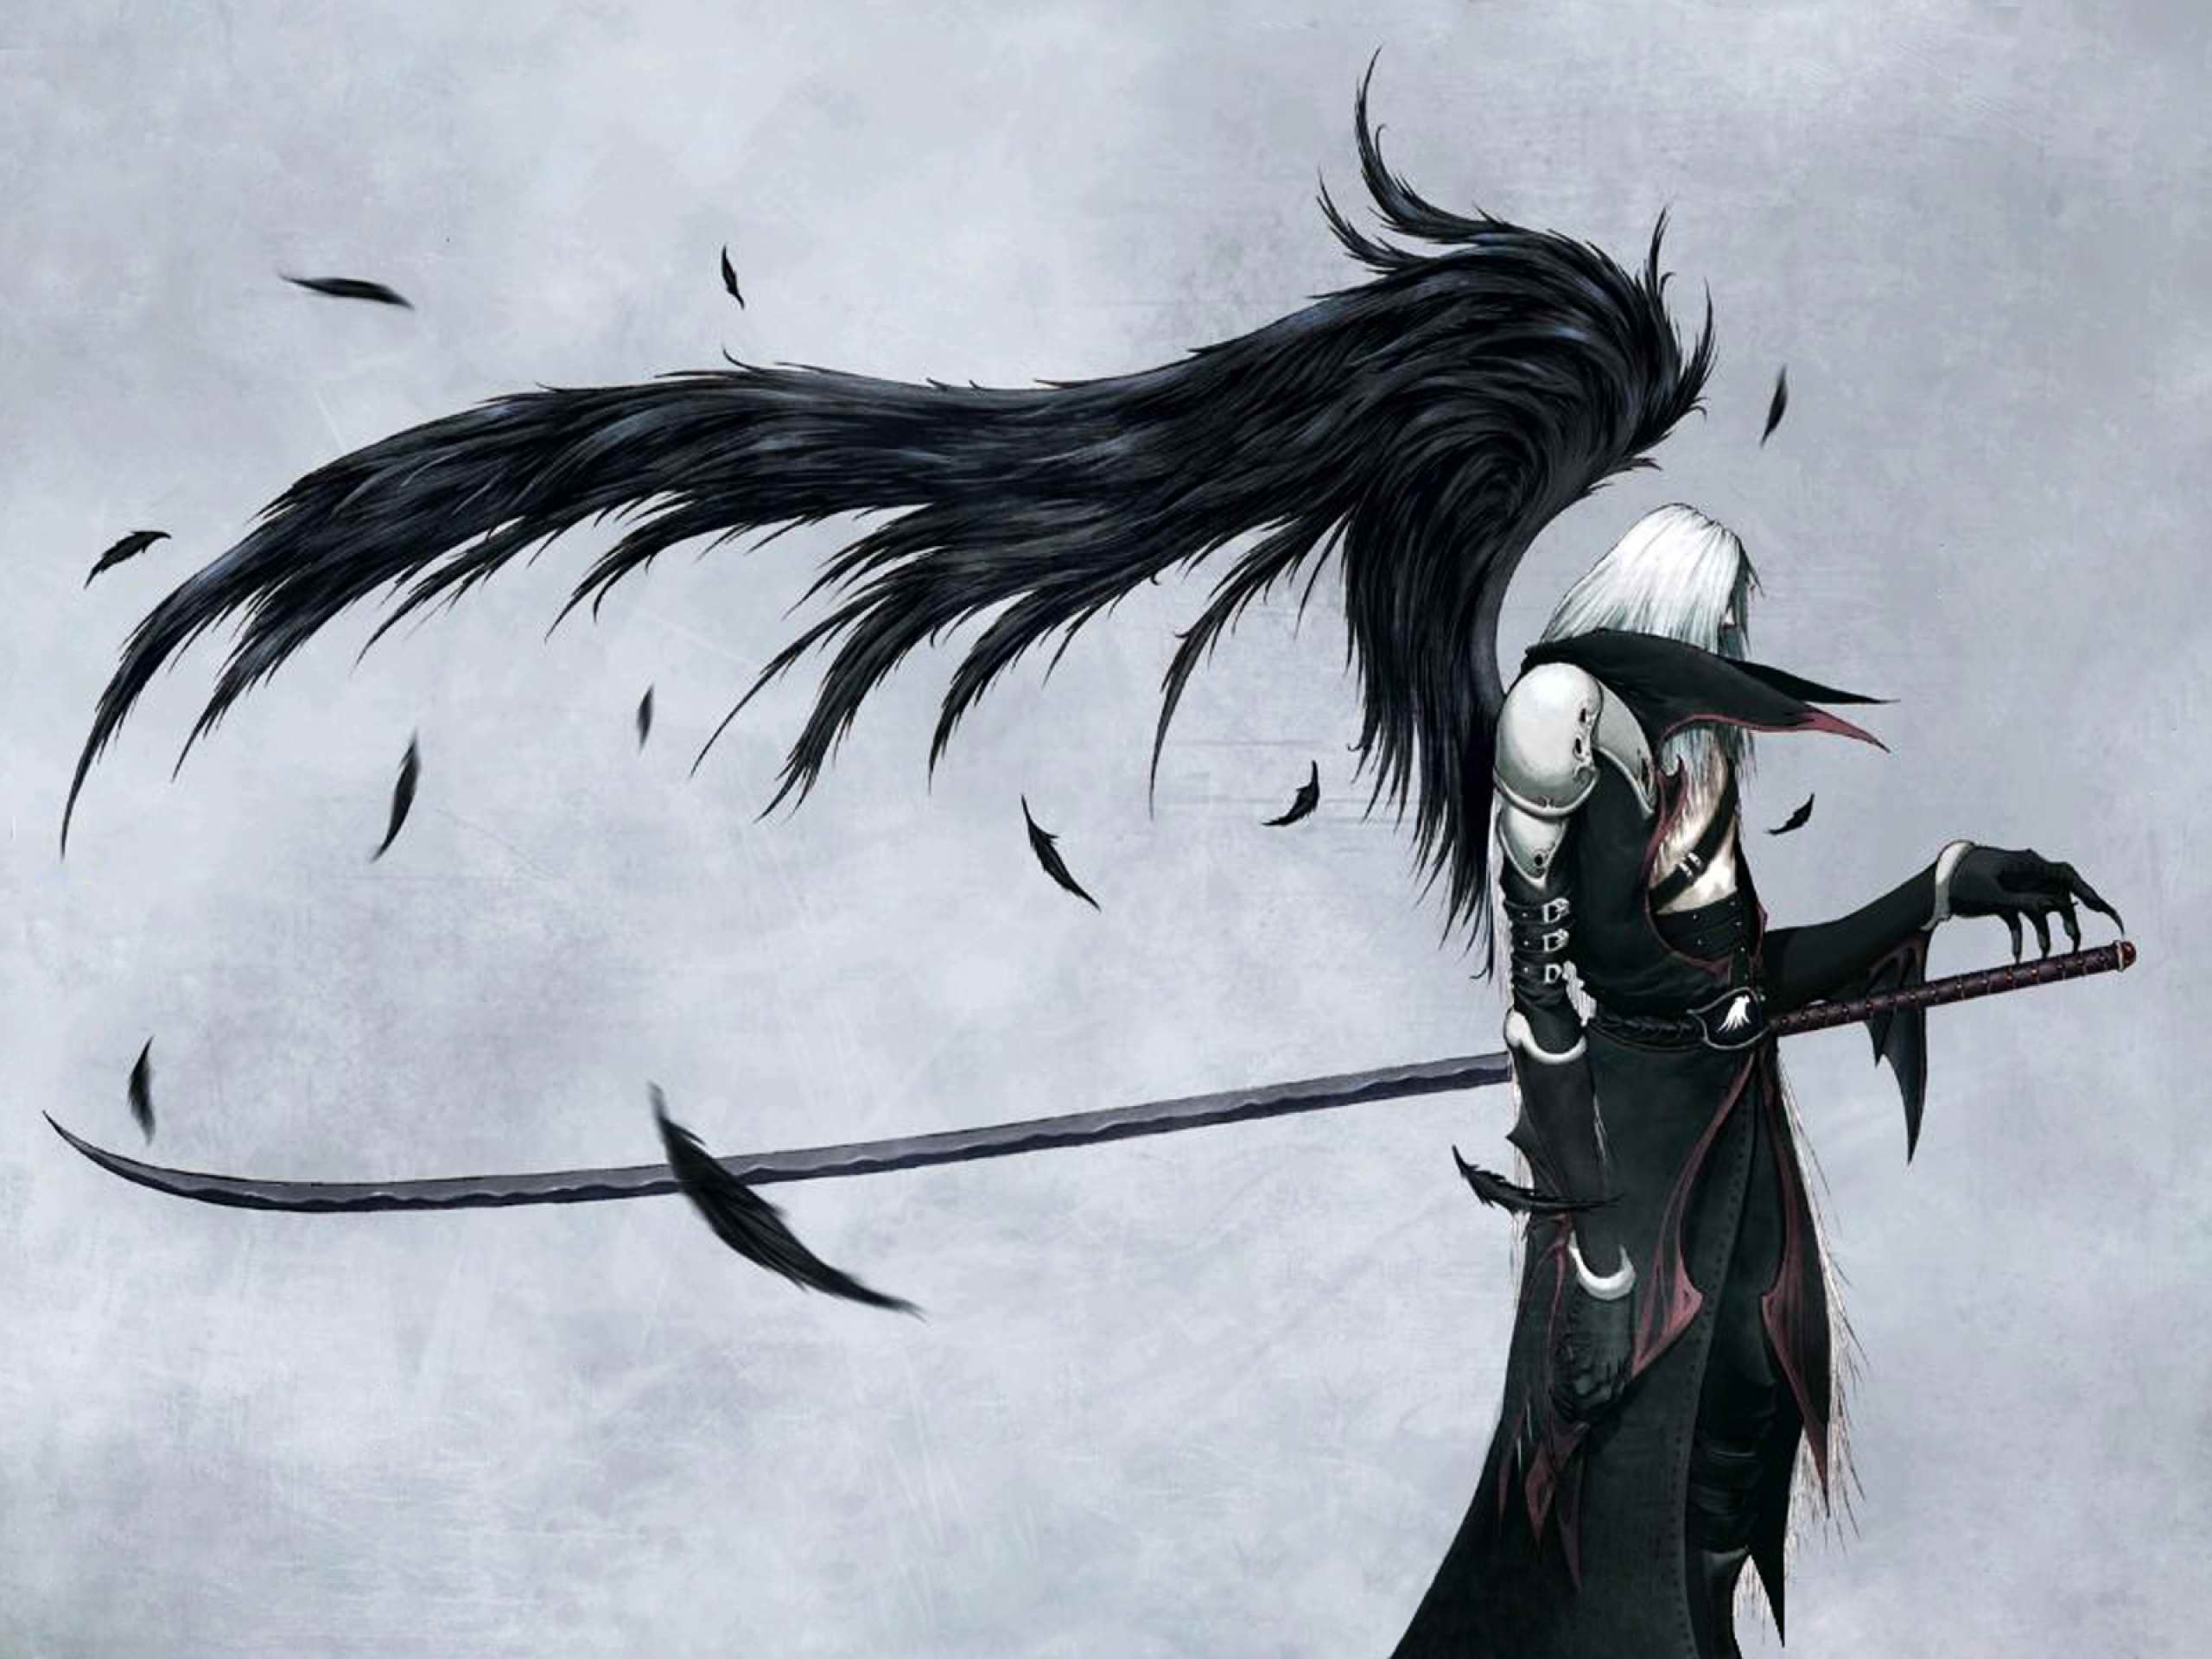 Final fantasy 7 sephiroth wallpapers wallpaper cave final fantasy 7 sephiroth hd wallpapers altavistaventures Gallery